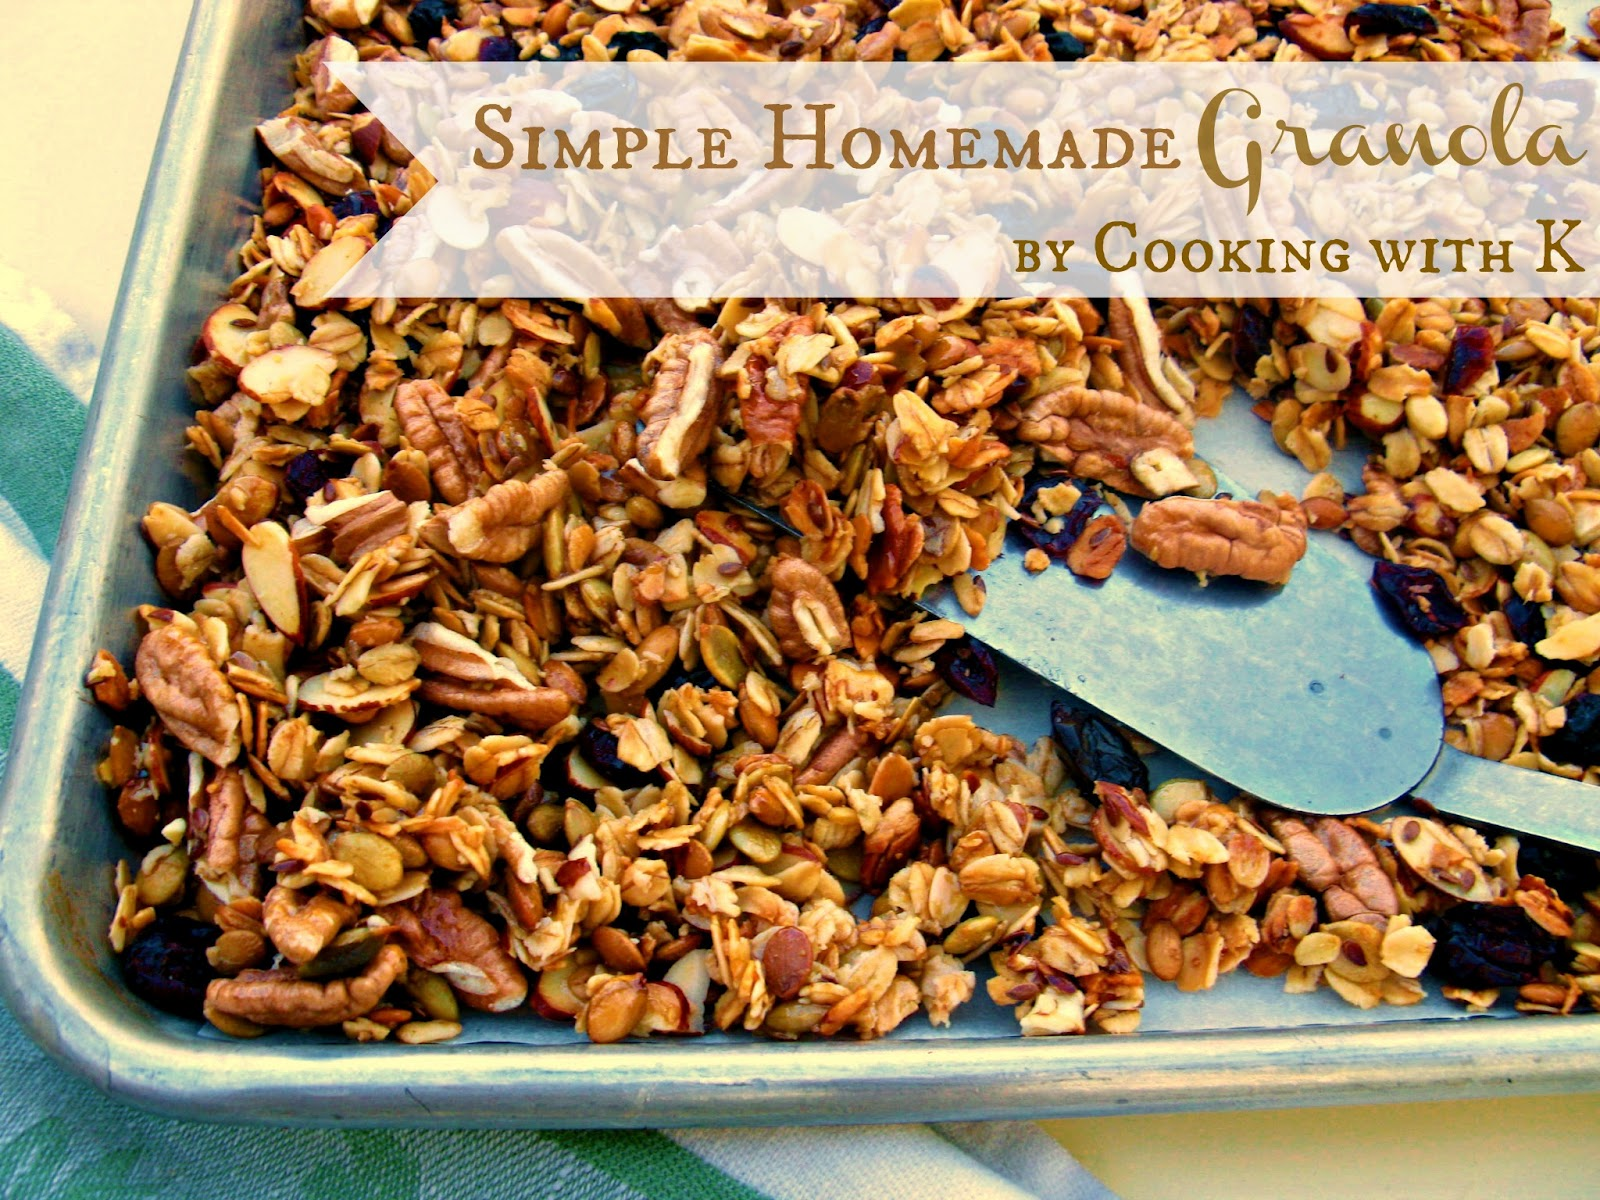 Cooking with K - Southern Kitchen Happenings: Simple Homemade Granola